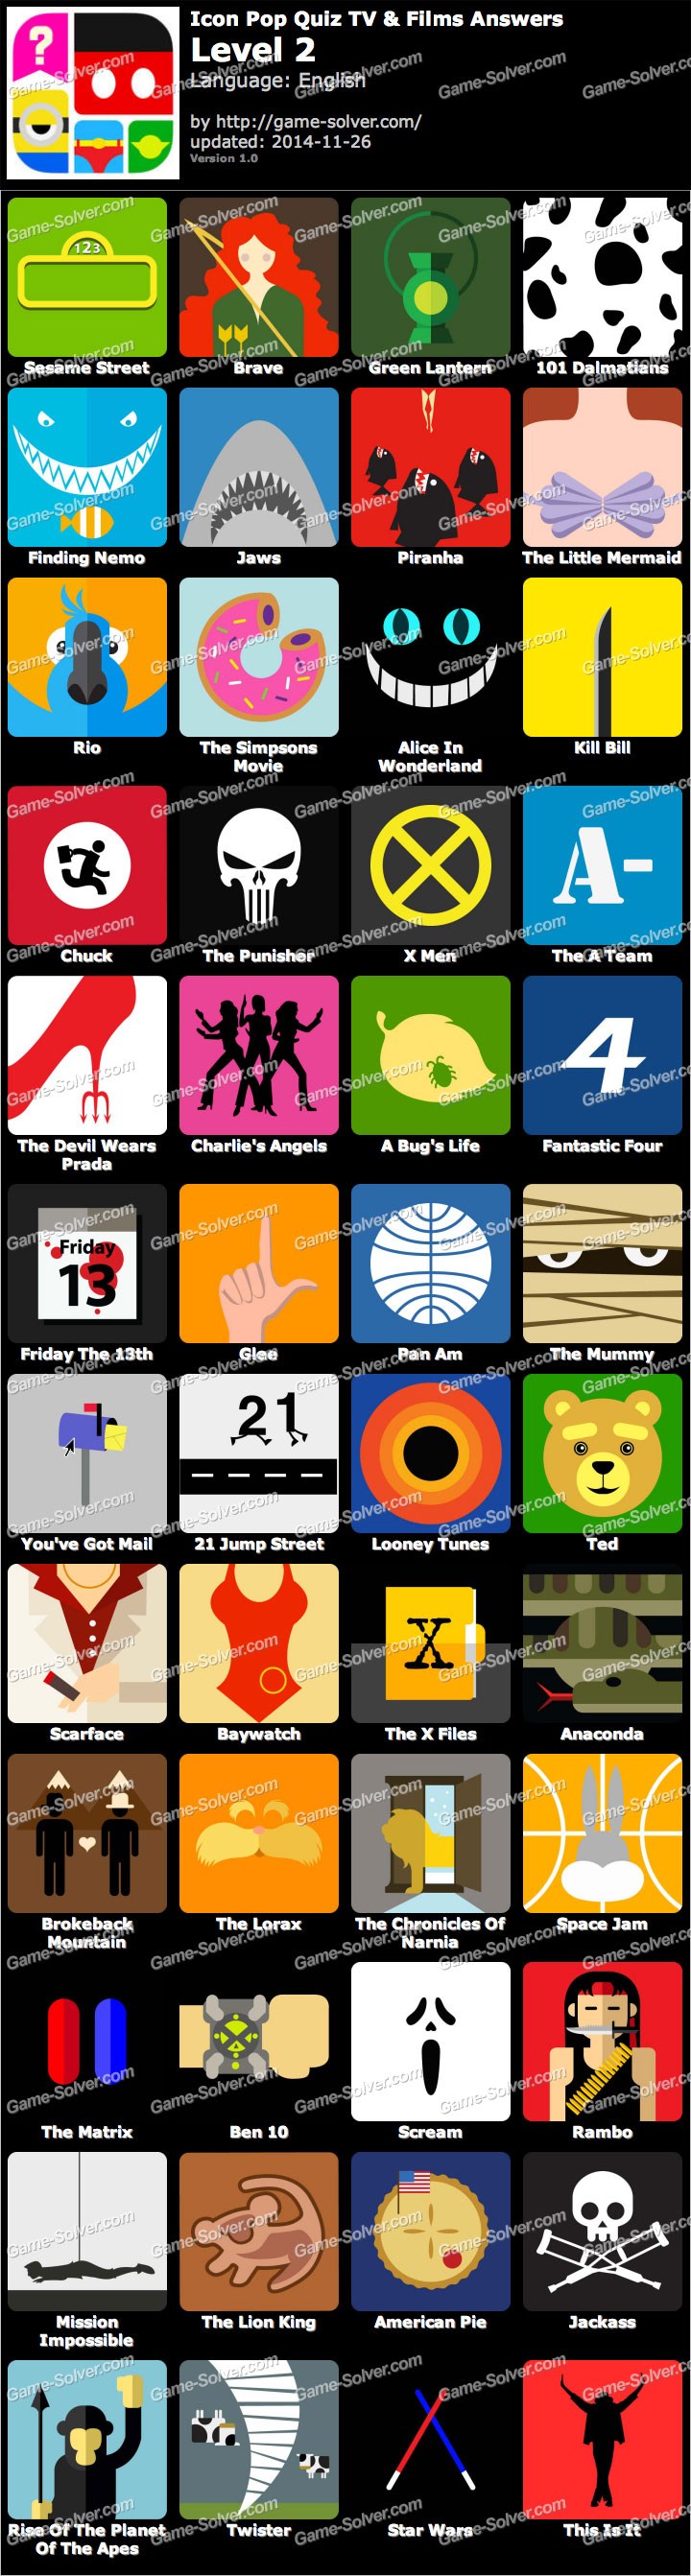 icon pop quiz tv and films level 2 game solver